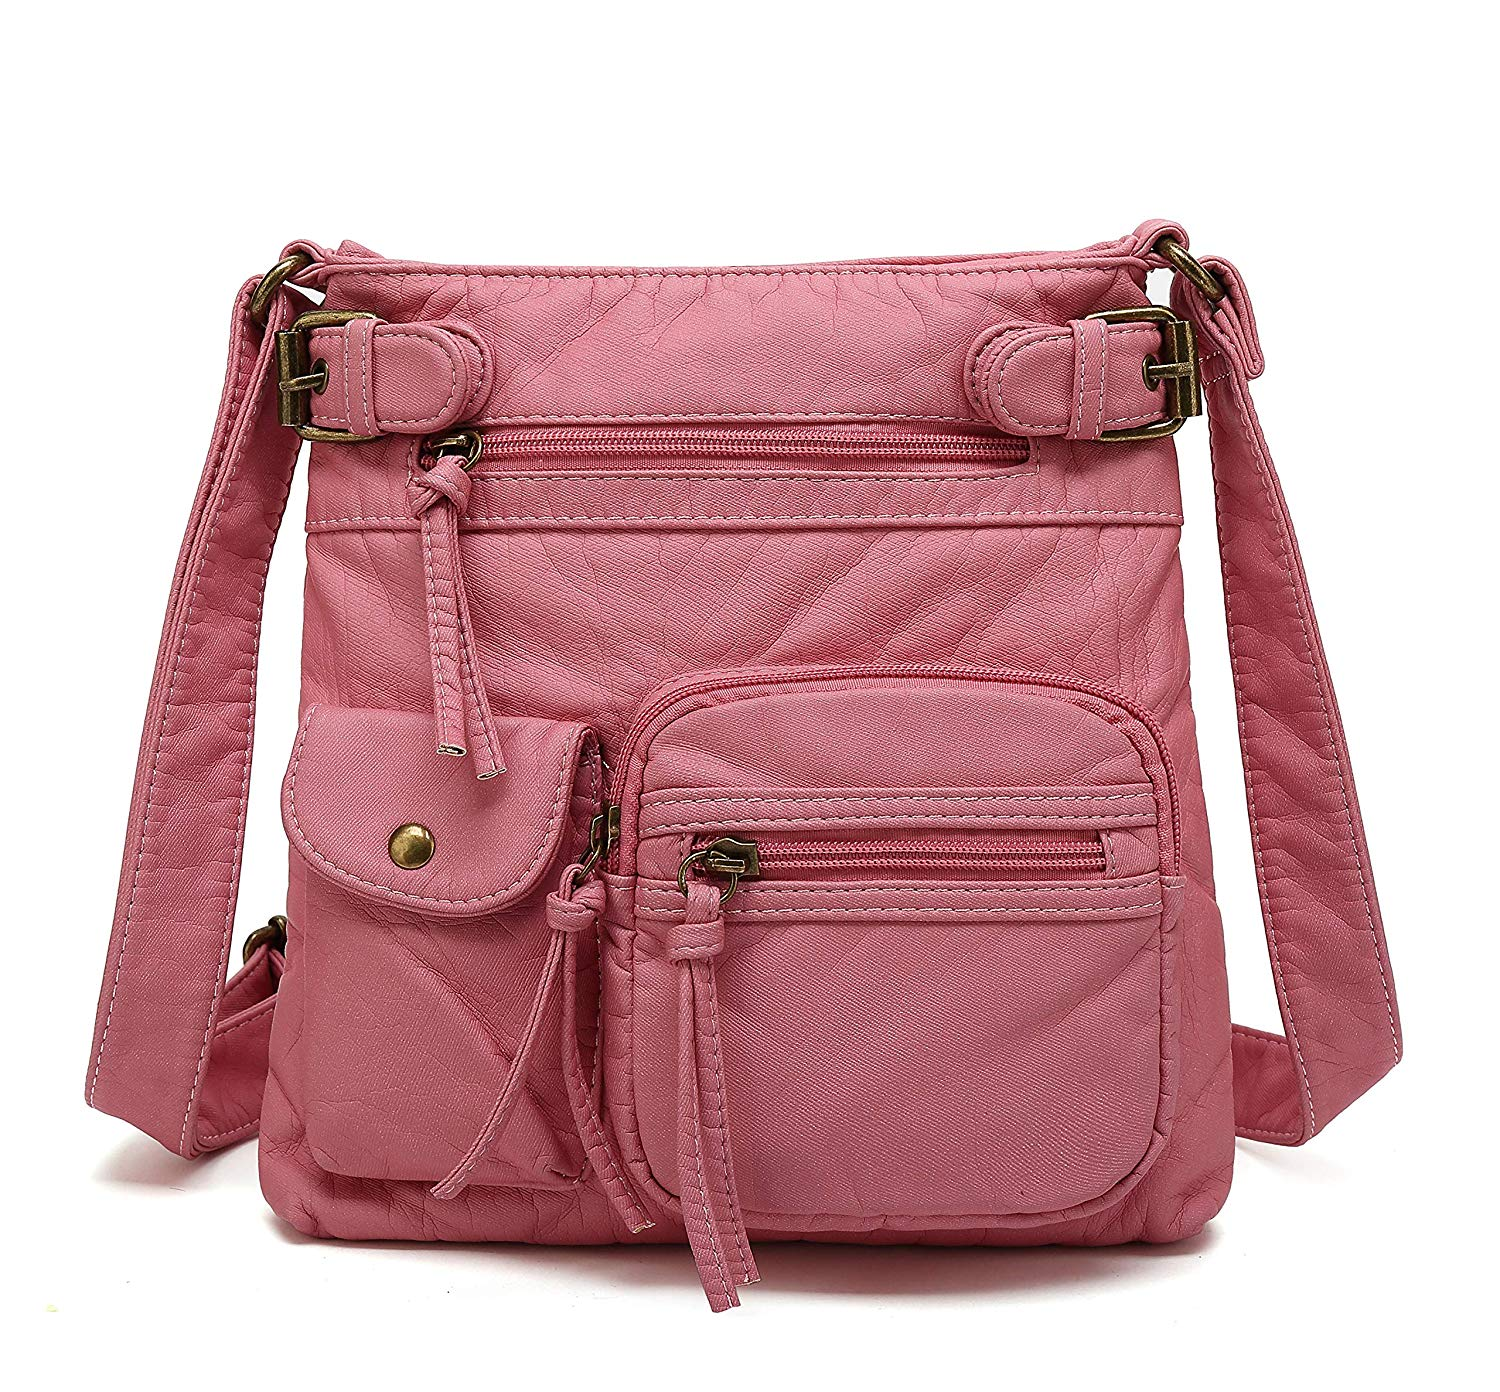 Review of Scarleton Small Multi Pocket Crossbody Bag